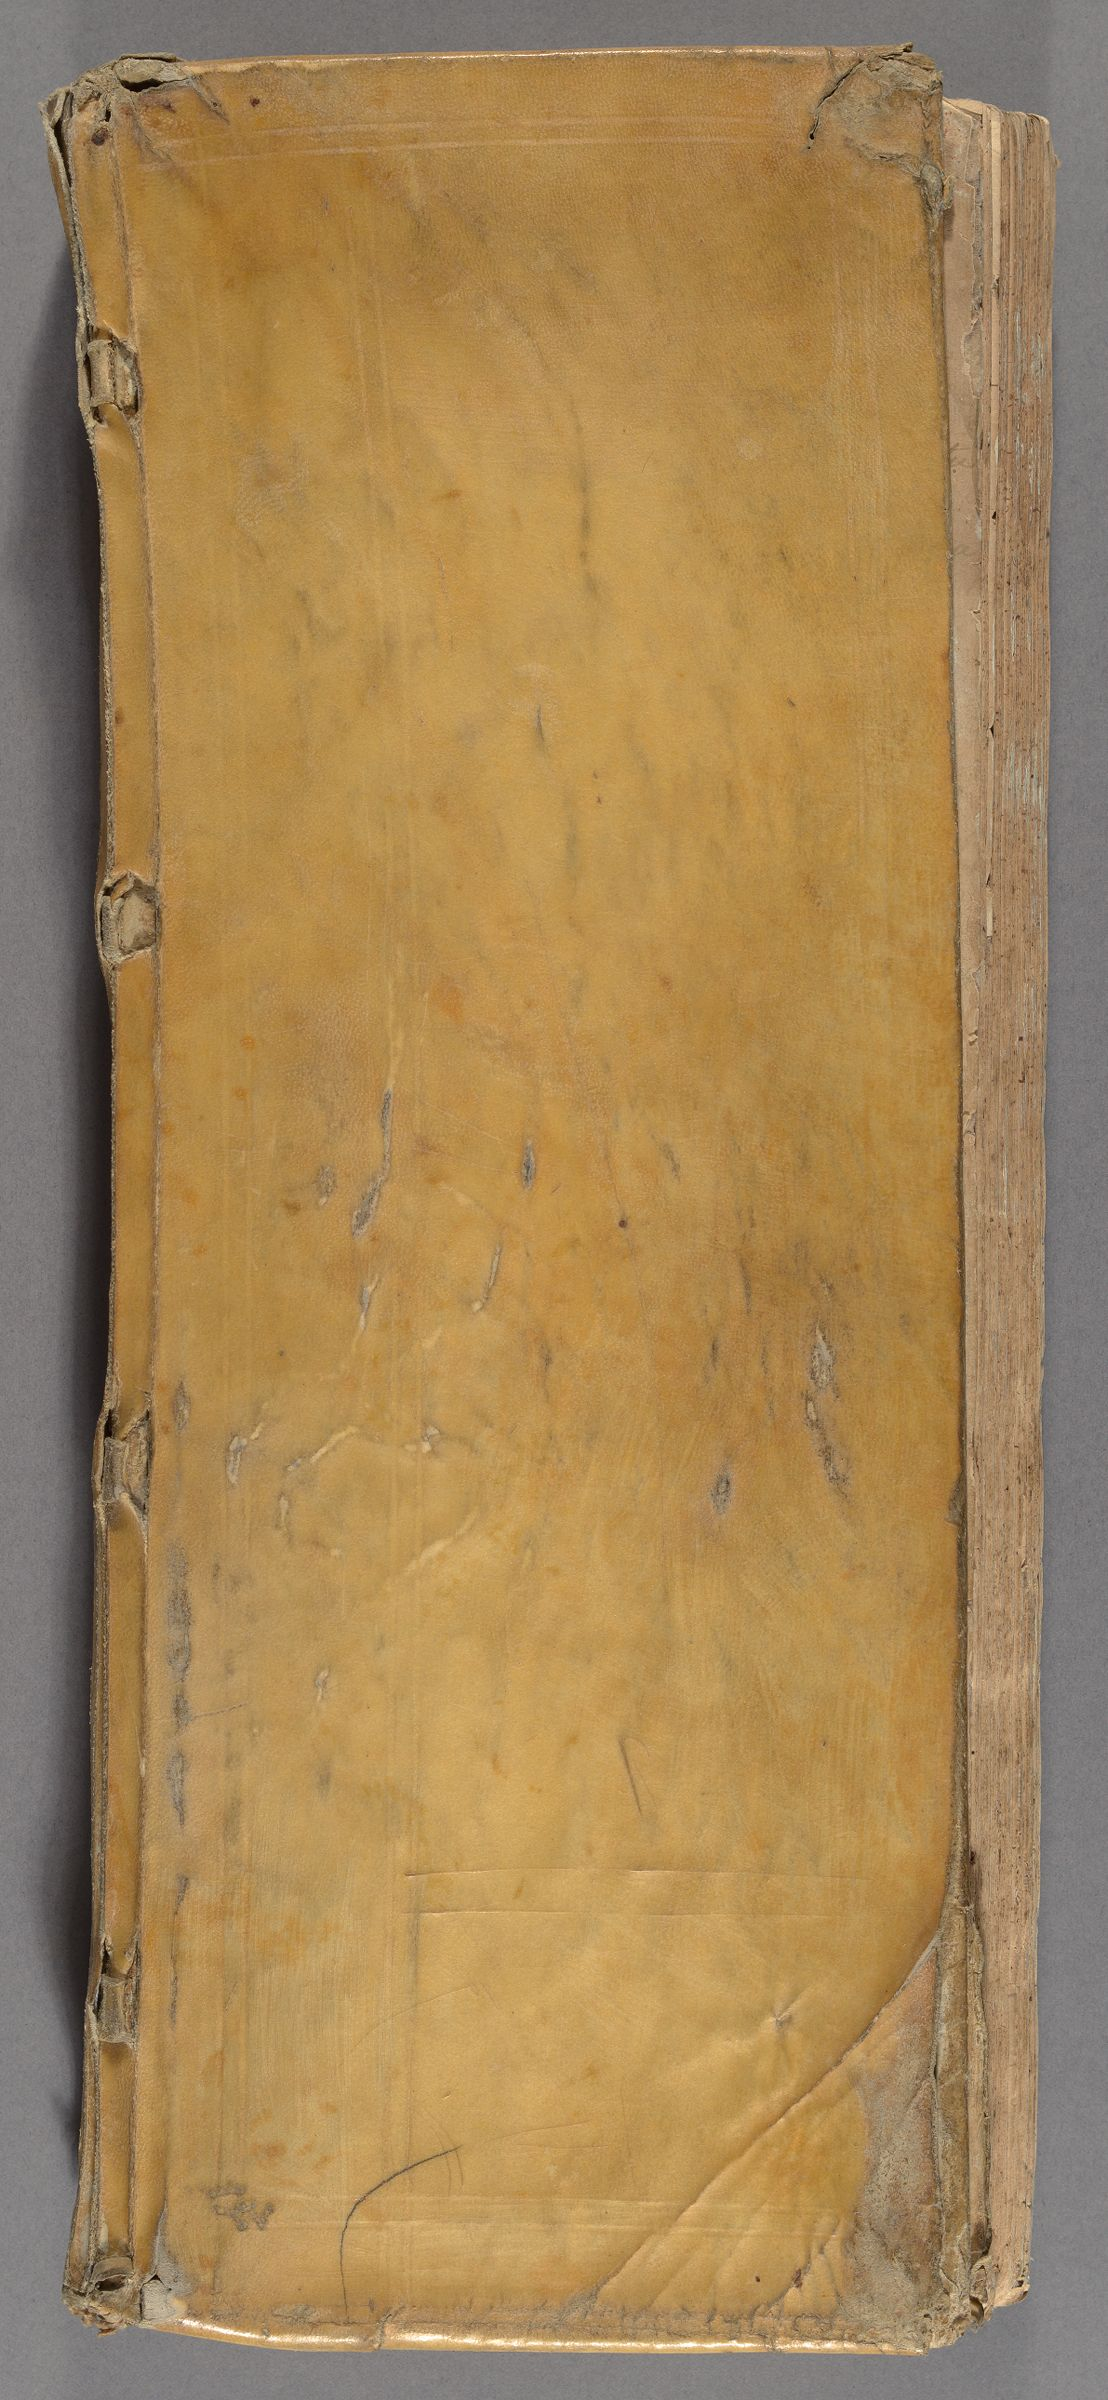 Ledger for the Classes of 1703-1718, 1703-1731